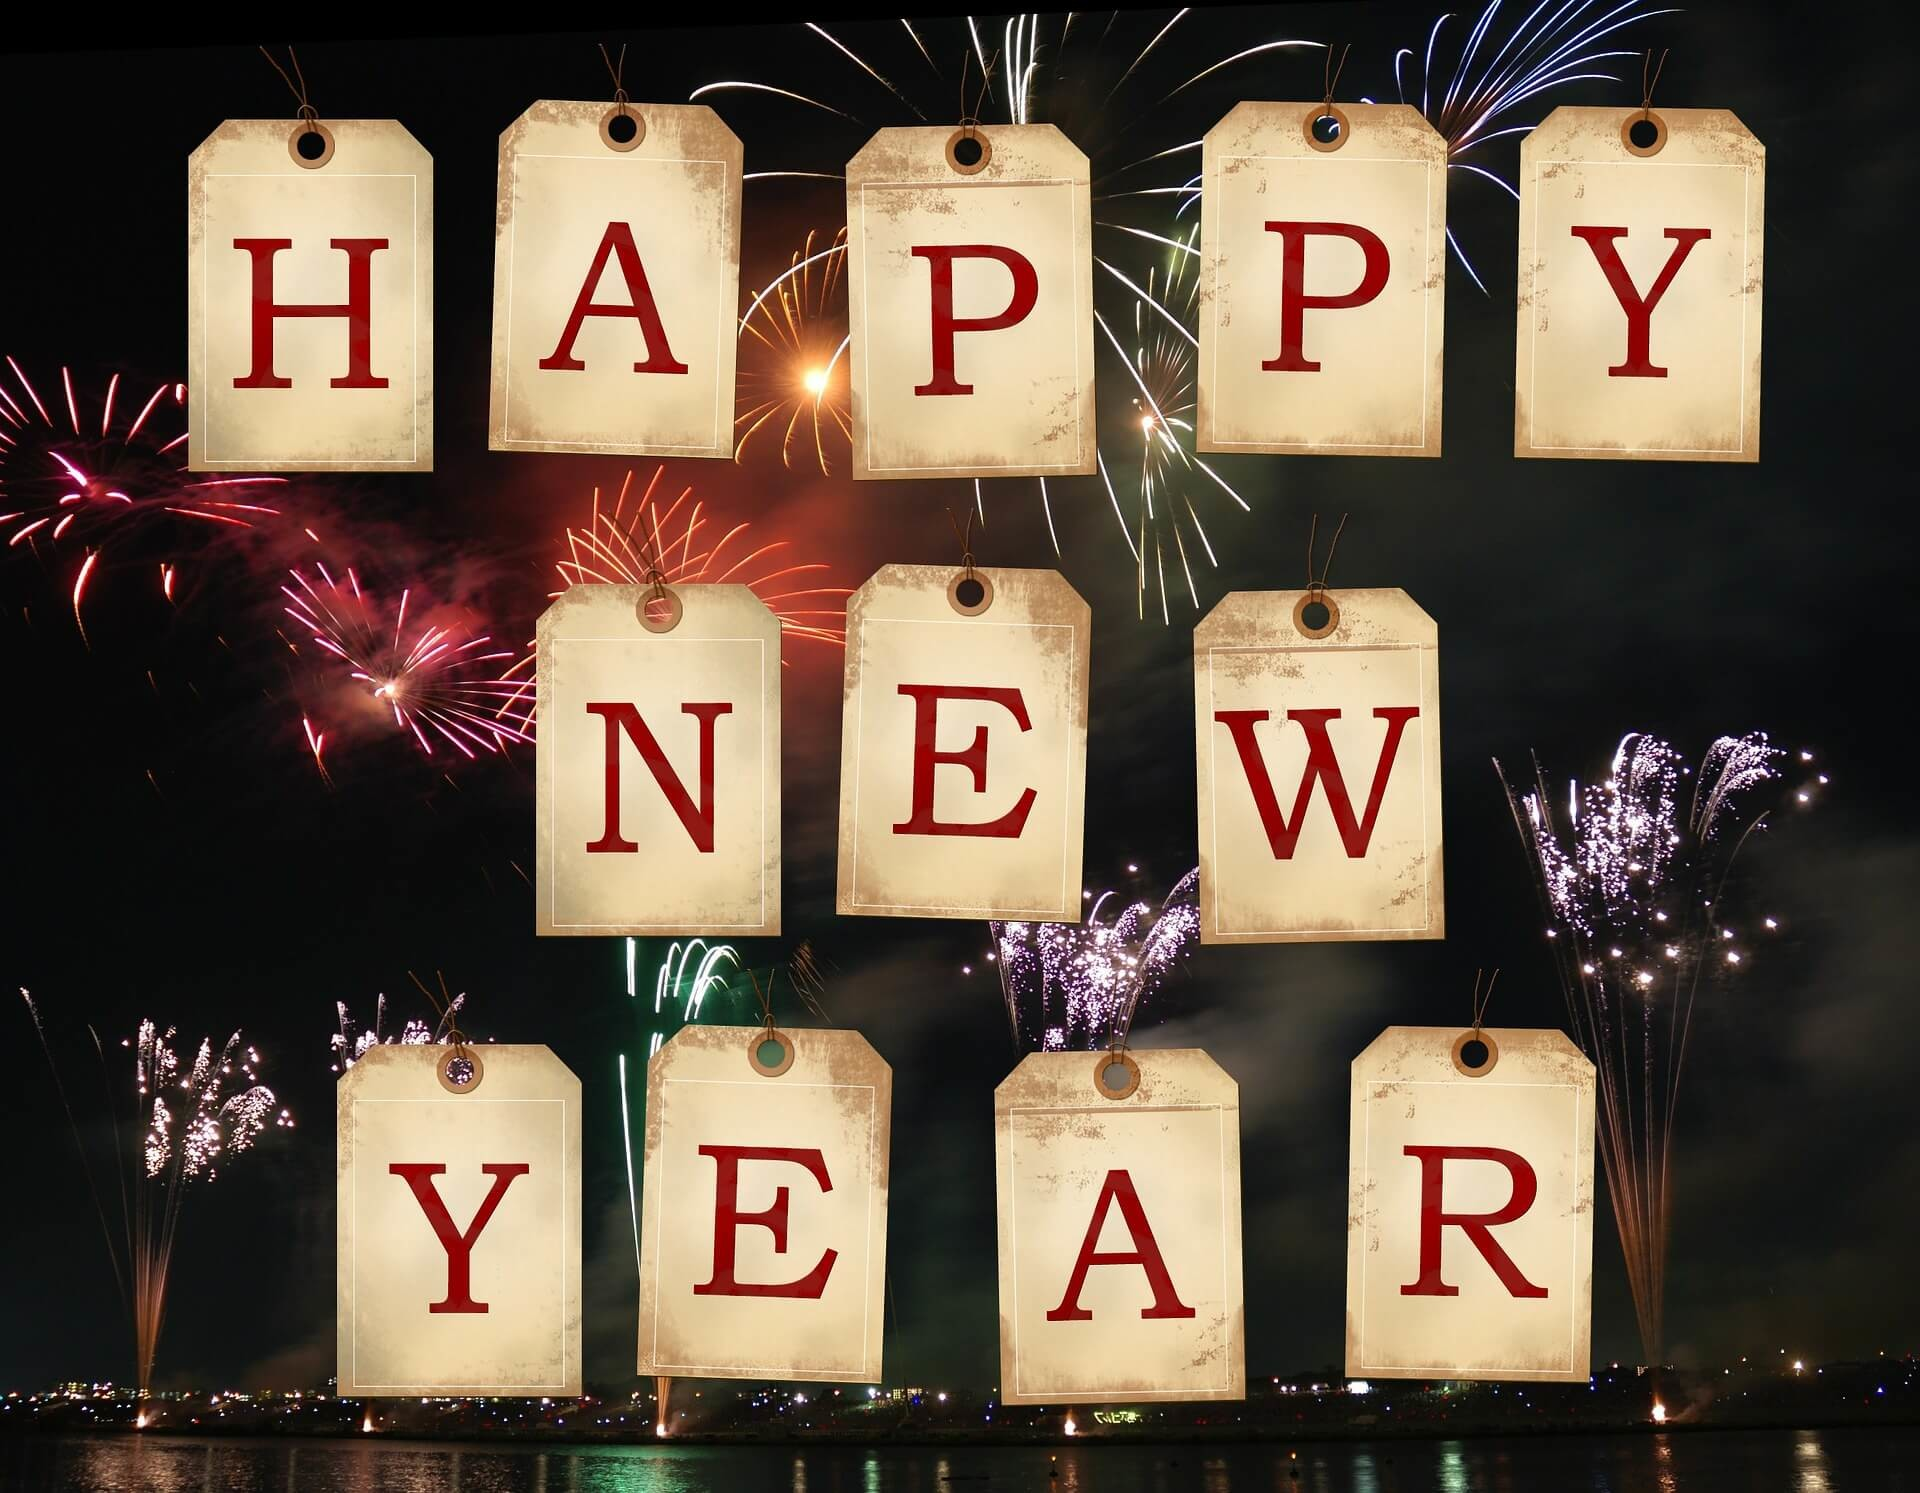 I wish this year has lesser disasters, lesser hate, lesser accidents and  loads of love. Happy New Year.